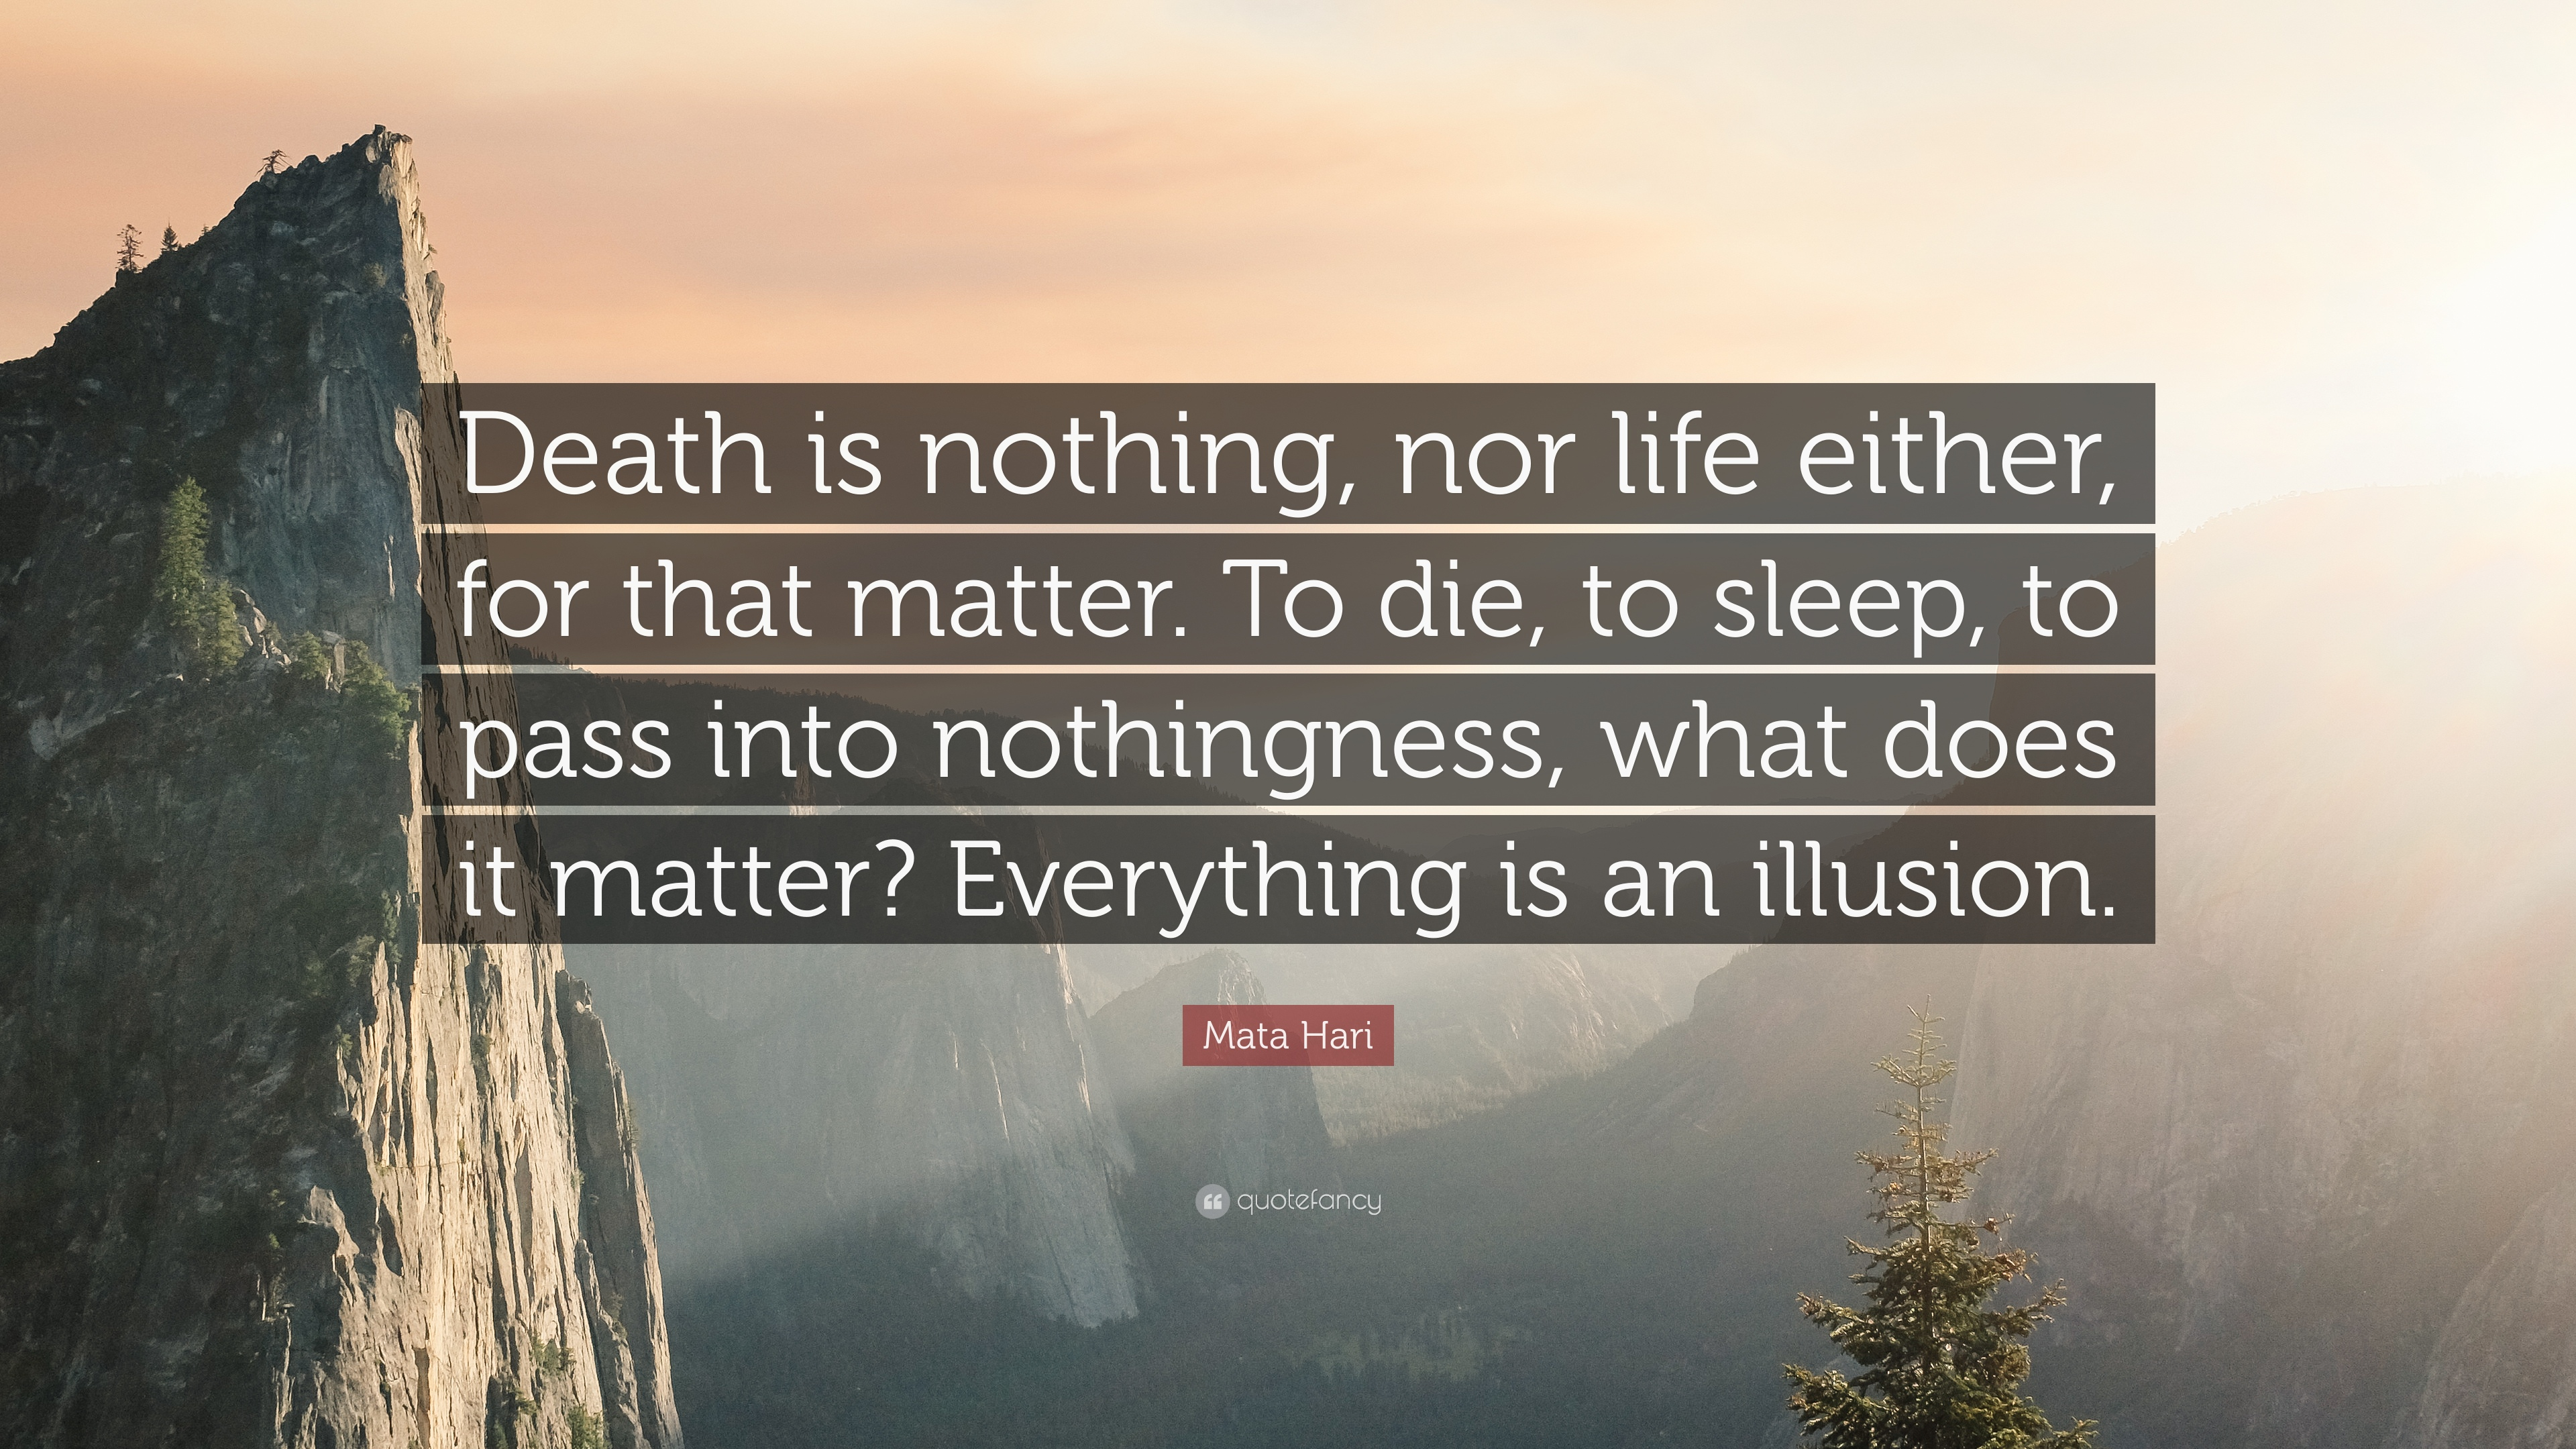 Mata Hari Quote: U201cDeath Is Nothing, Nor Life Either, For That Matter